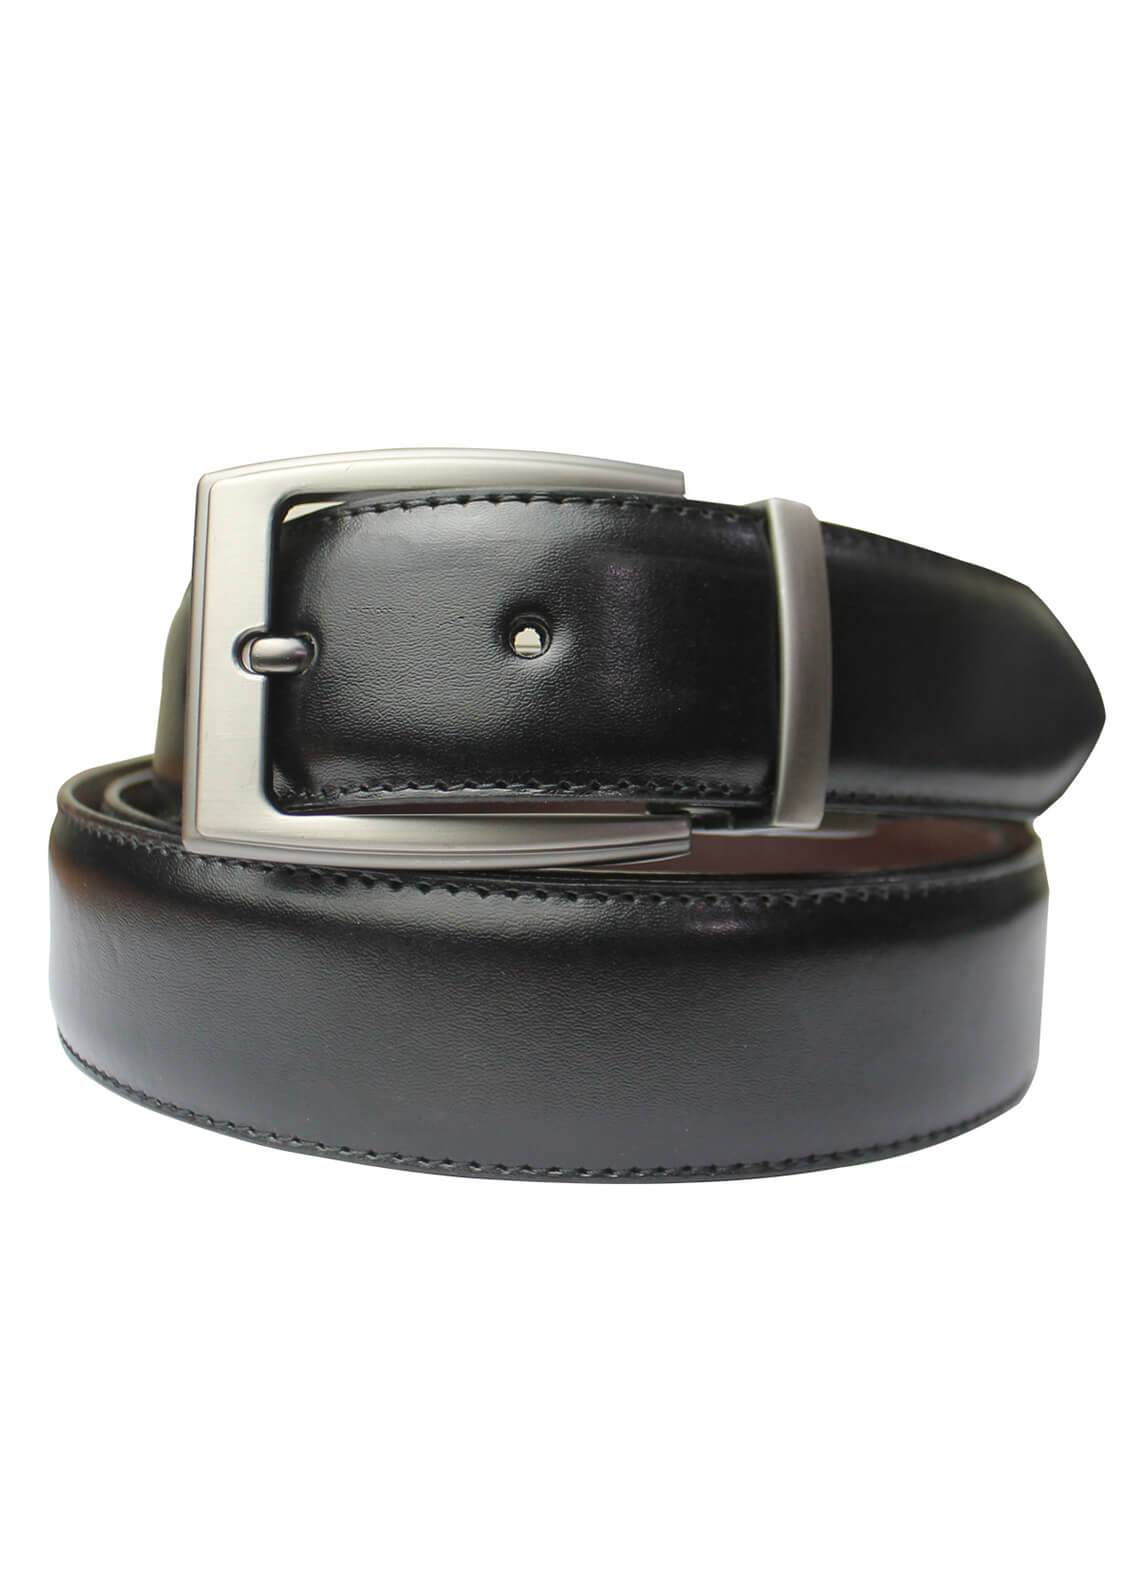 Shahzeb Saeed Textured Leather Men Belts BELT-149 Black - Casual Accessories